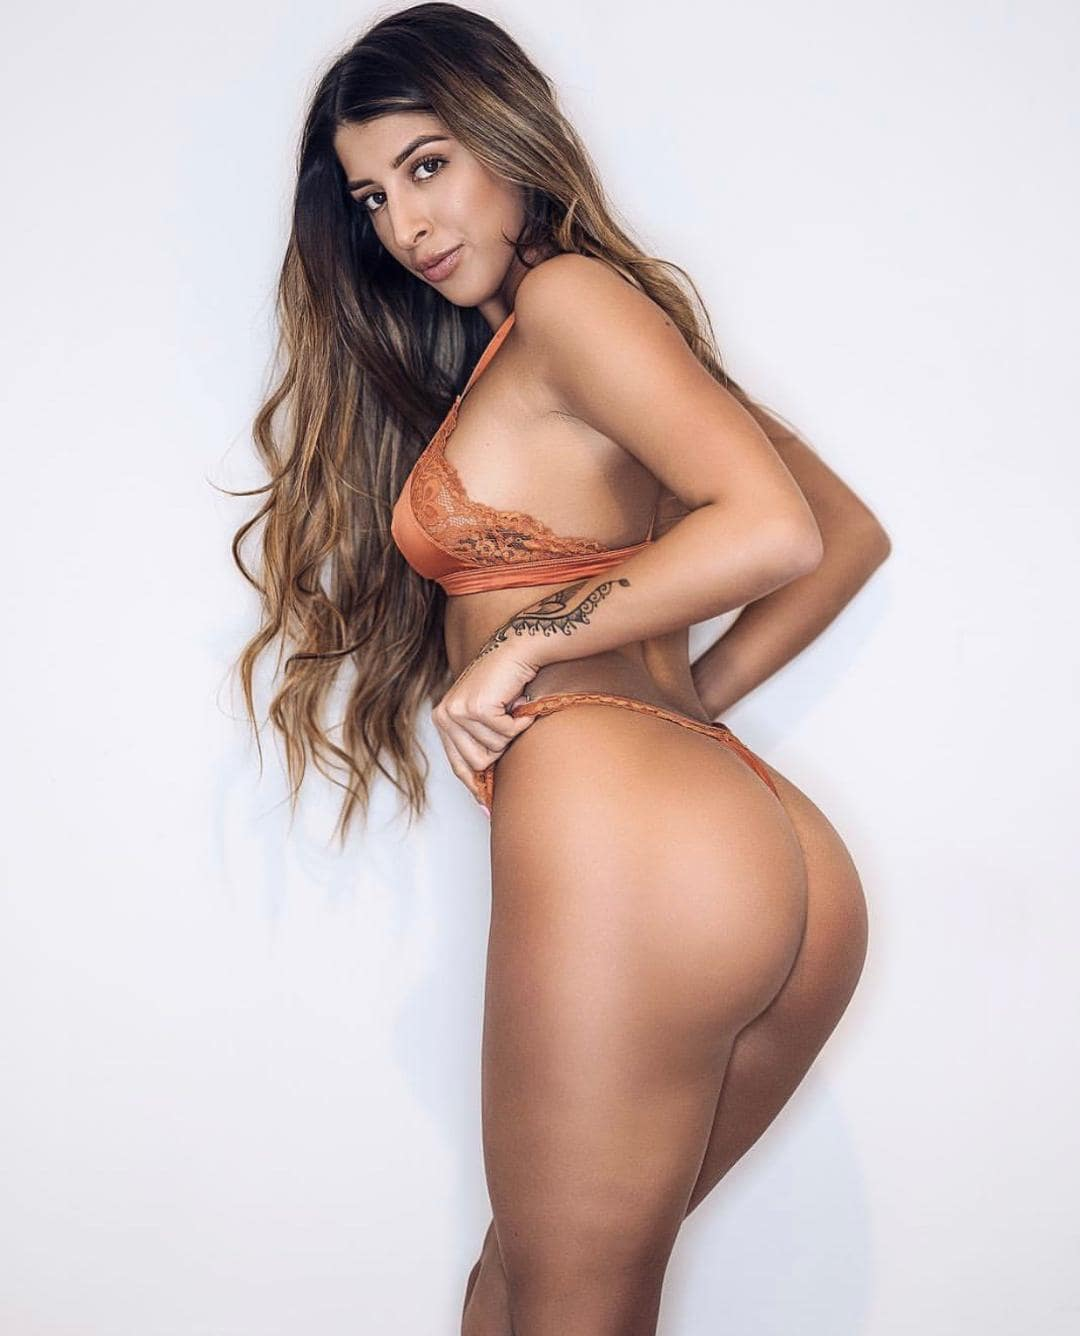 Strippers Fresno for hire. Exotic dancers bachelor party strippers for escort party